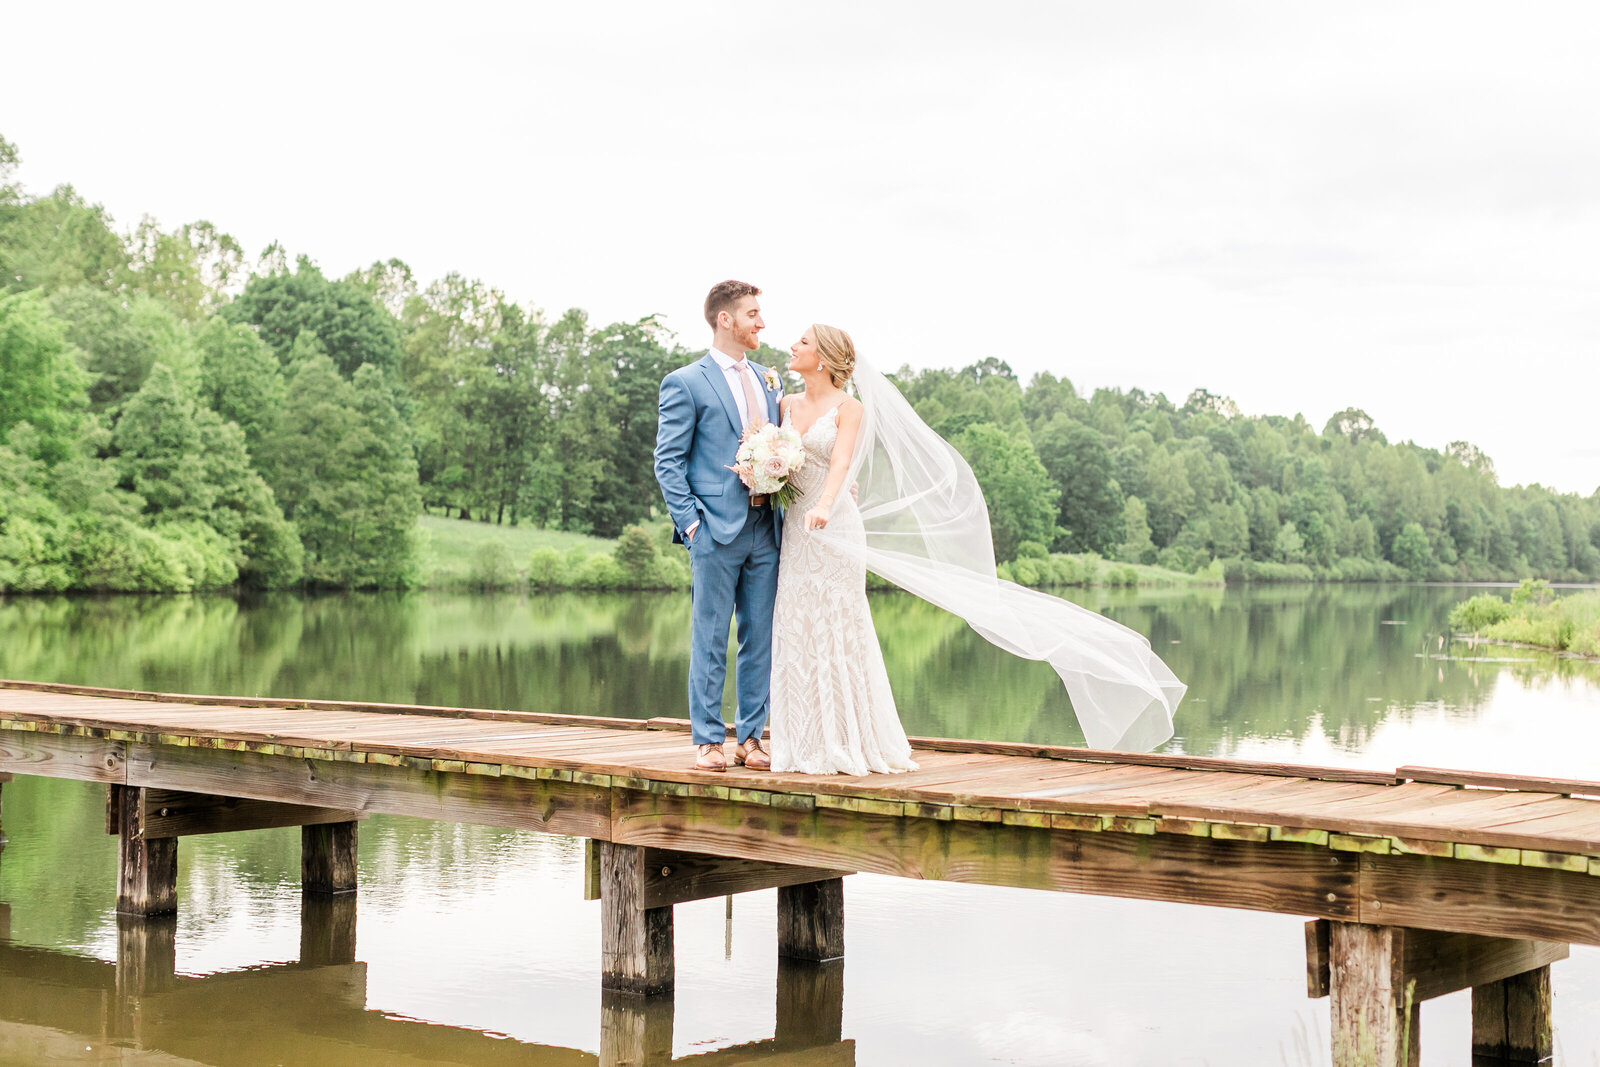 melissa and tyler wedding 2019-694